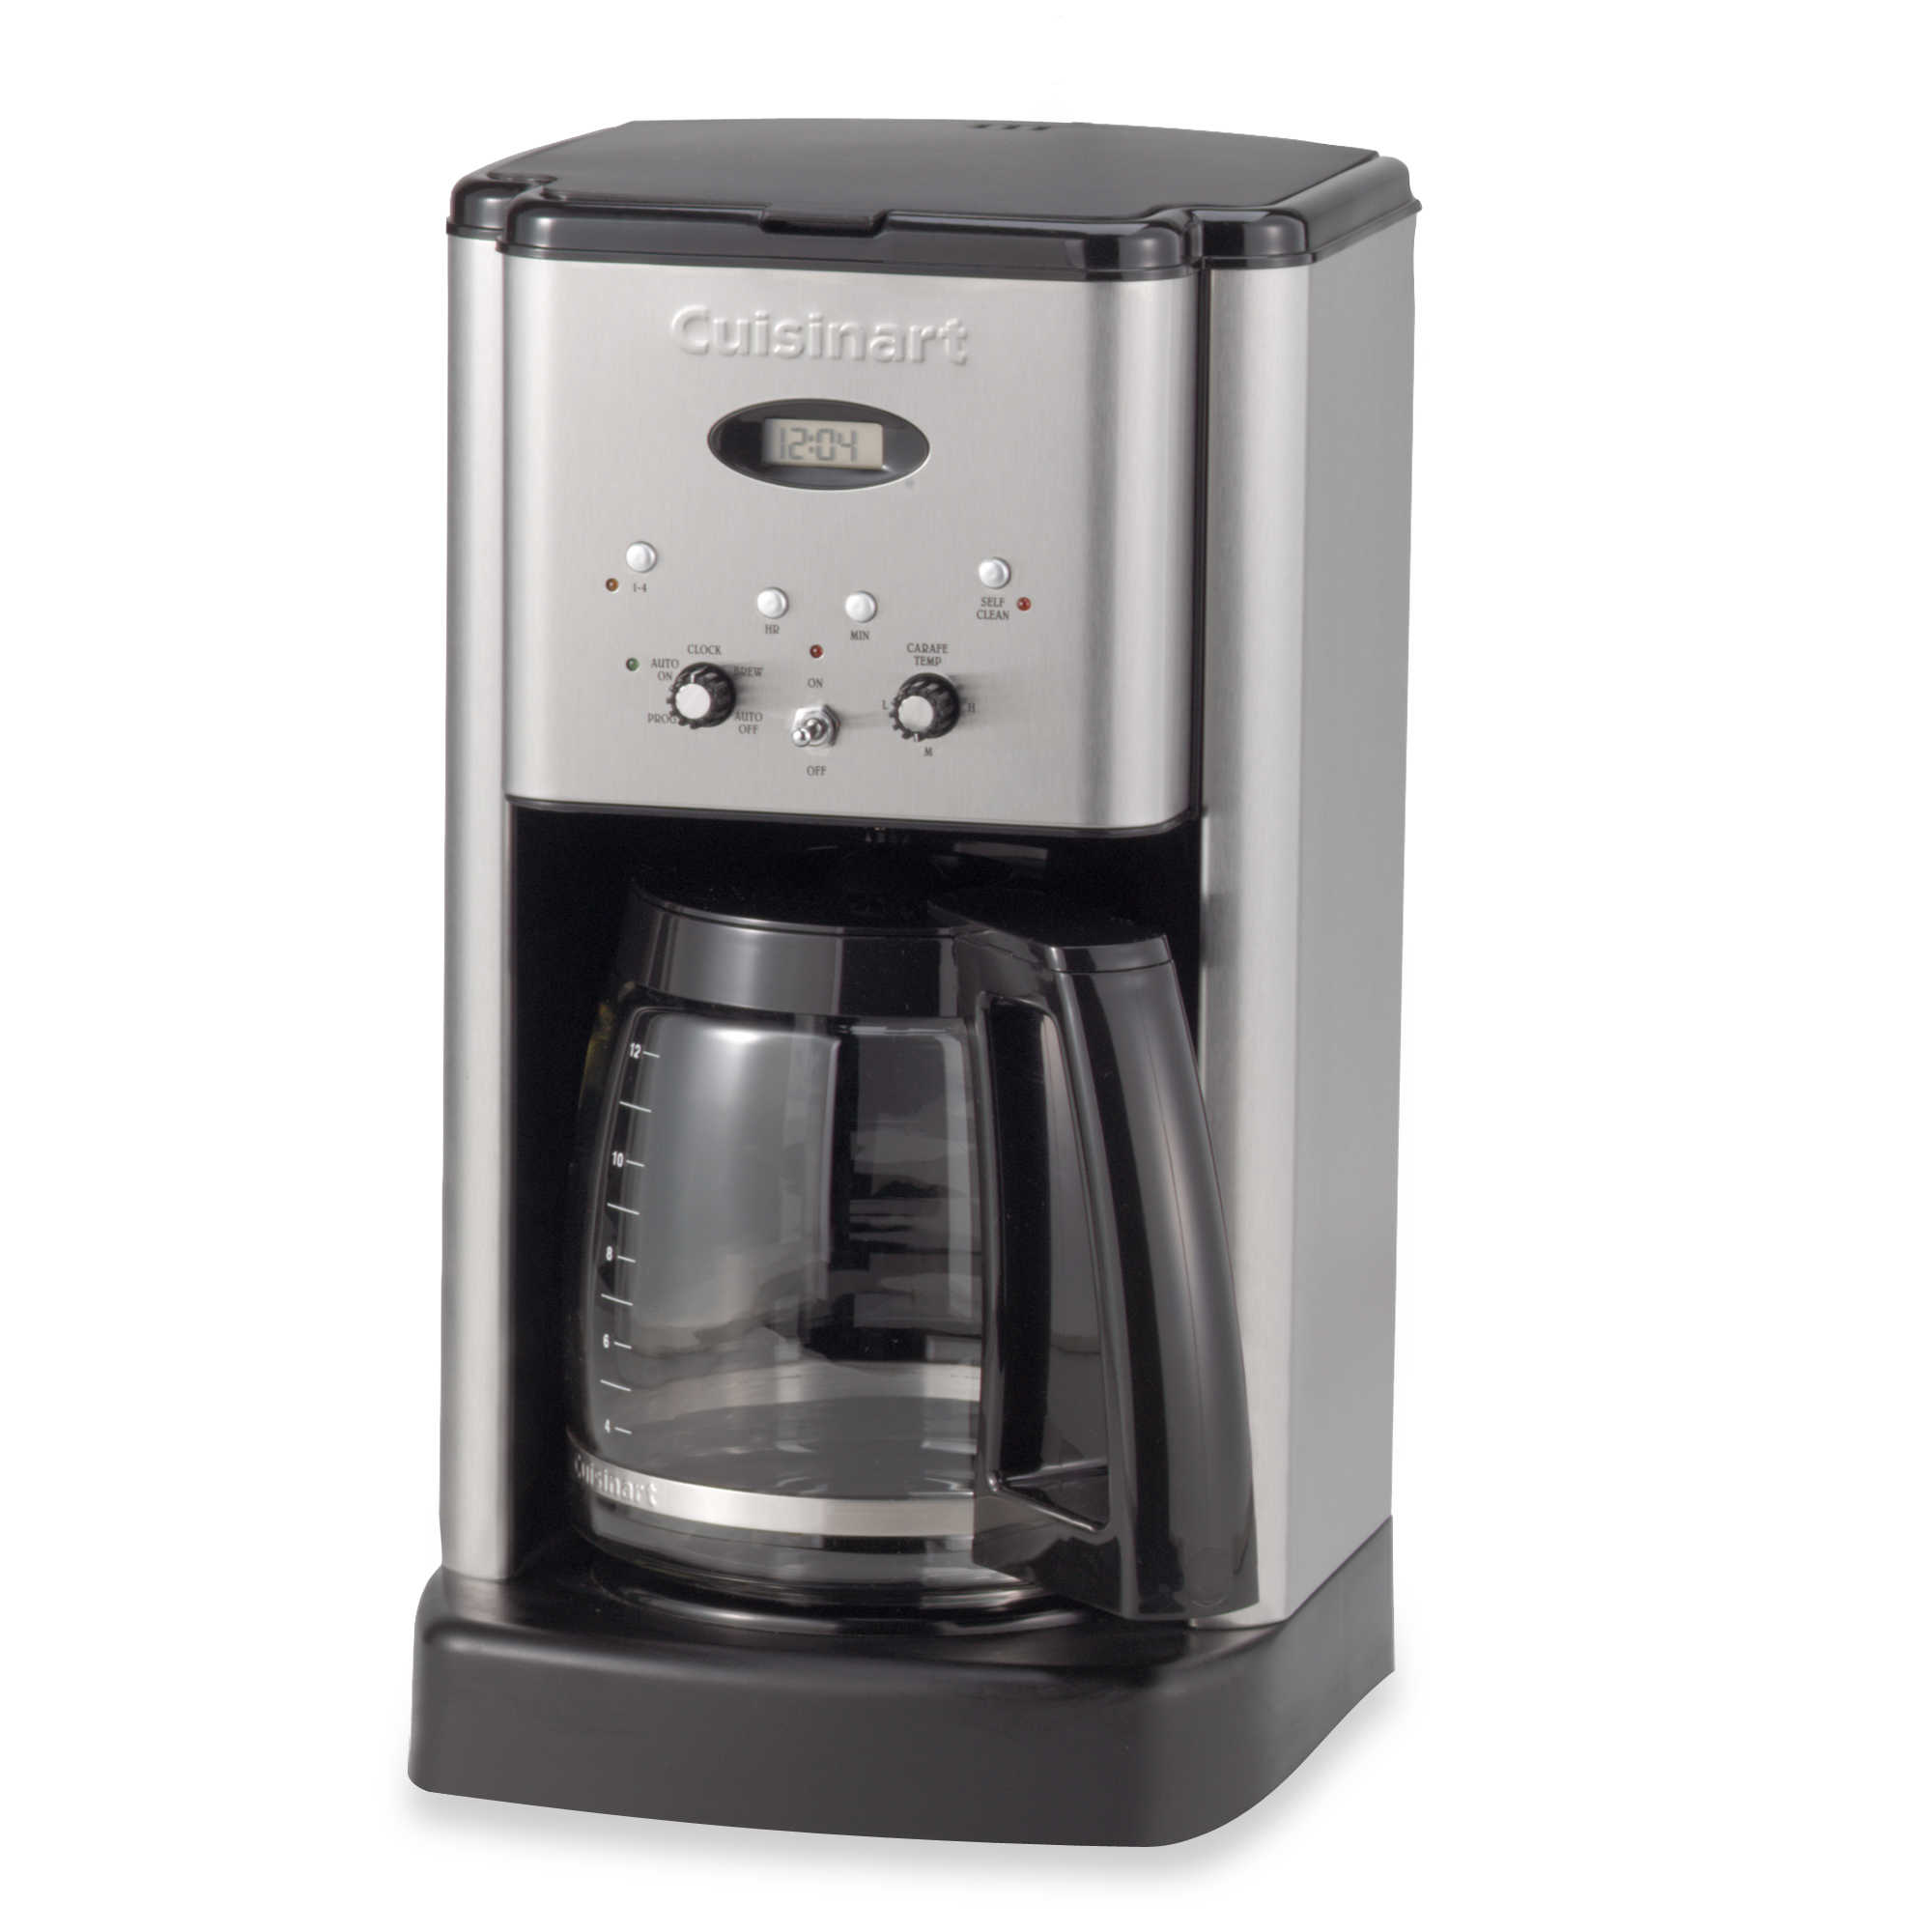 European coffee maker homesfeed for Apartment coffee maker